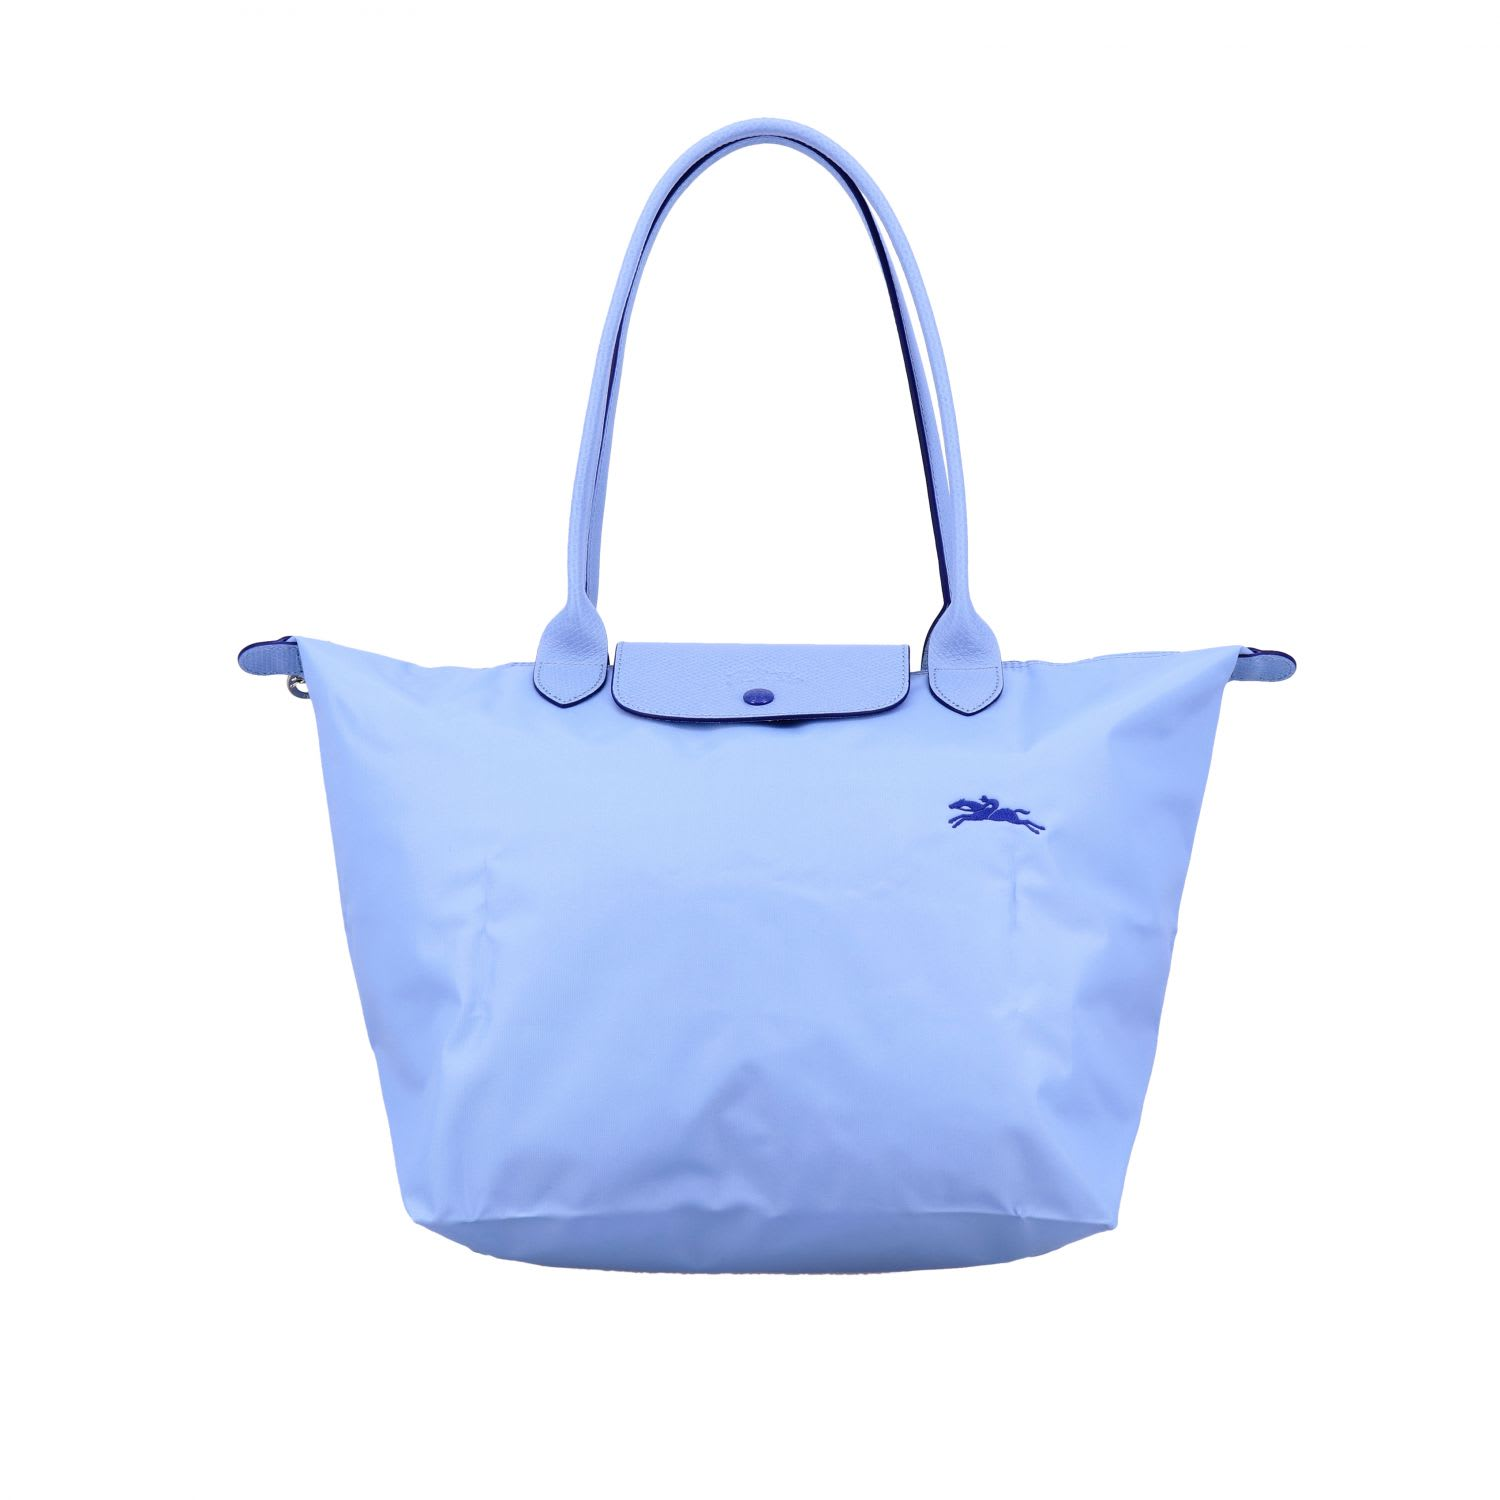 Longchamp In Nylon In Gnawed Blue